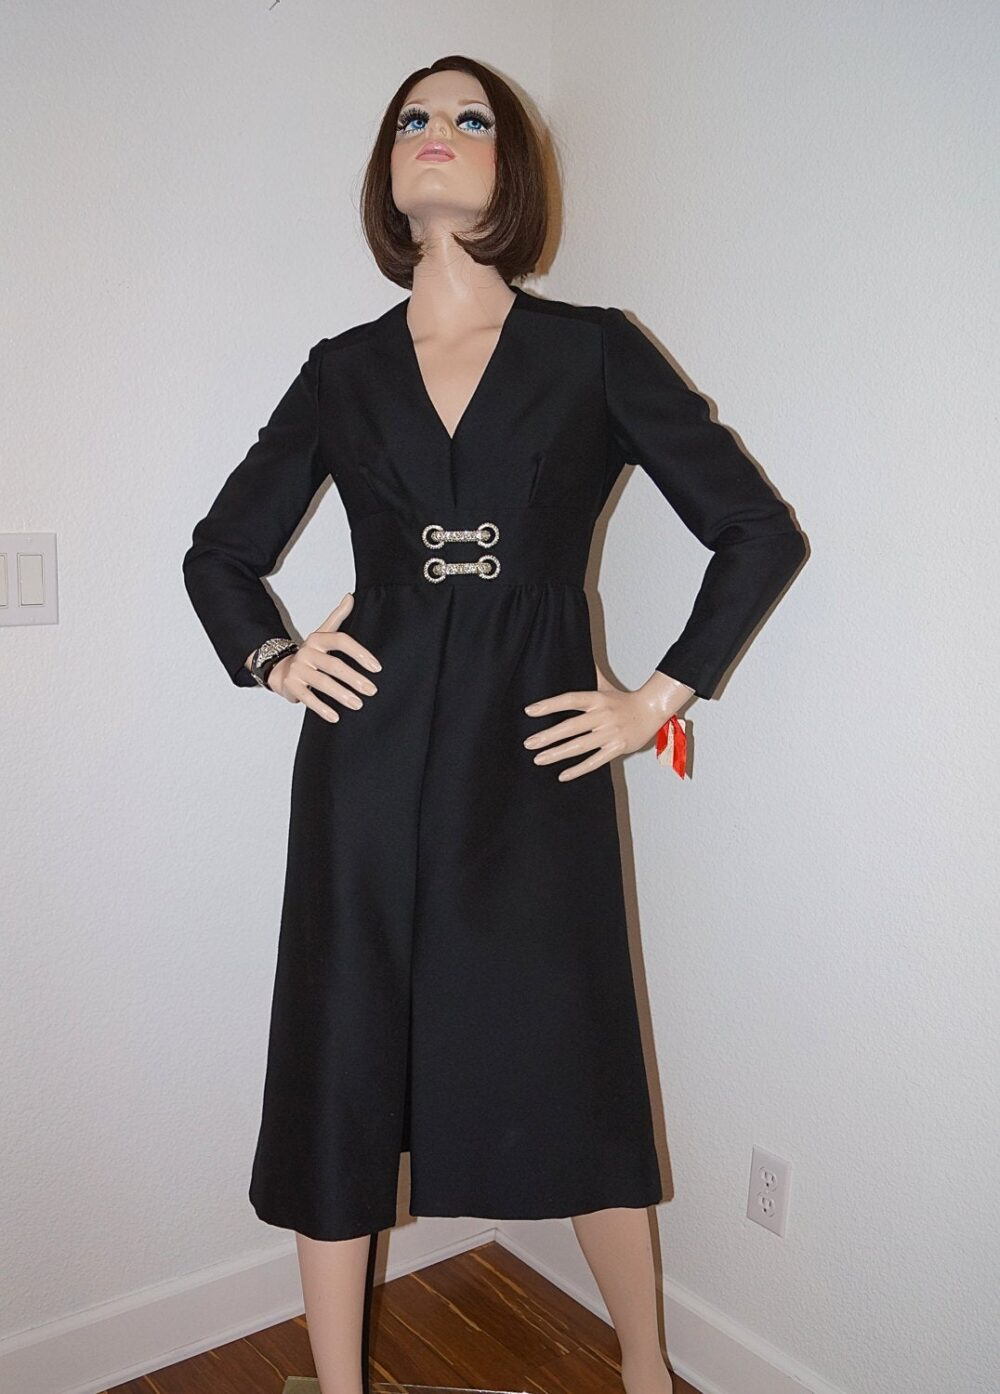 60S Joseph Magnin Black Wool Crepe Dress With Rhinestone Buckle Details/1960S Little New Tags Cocktail Party